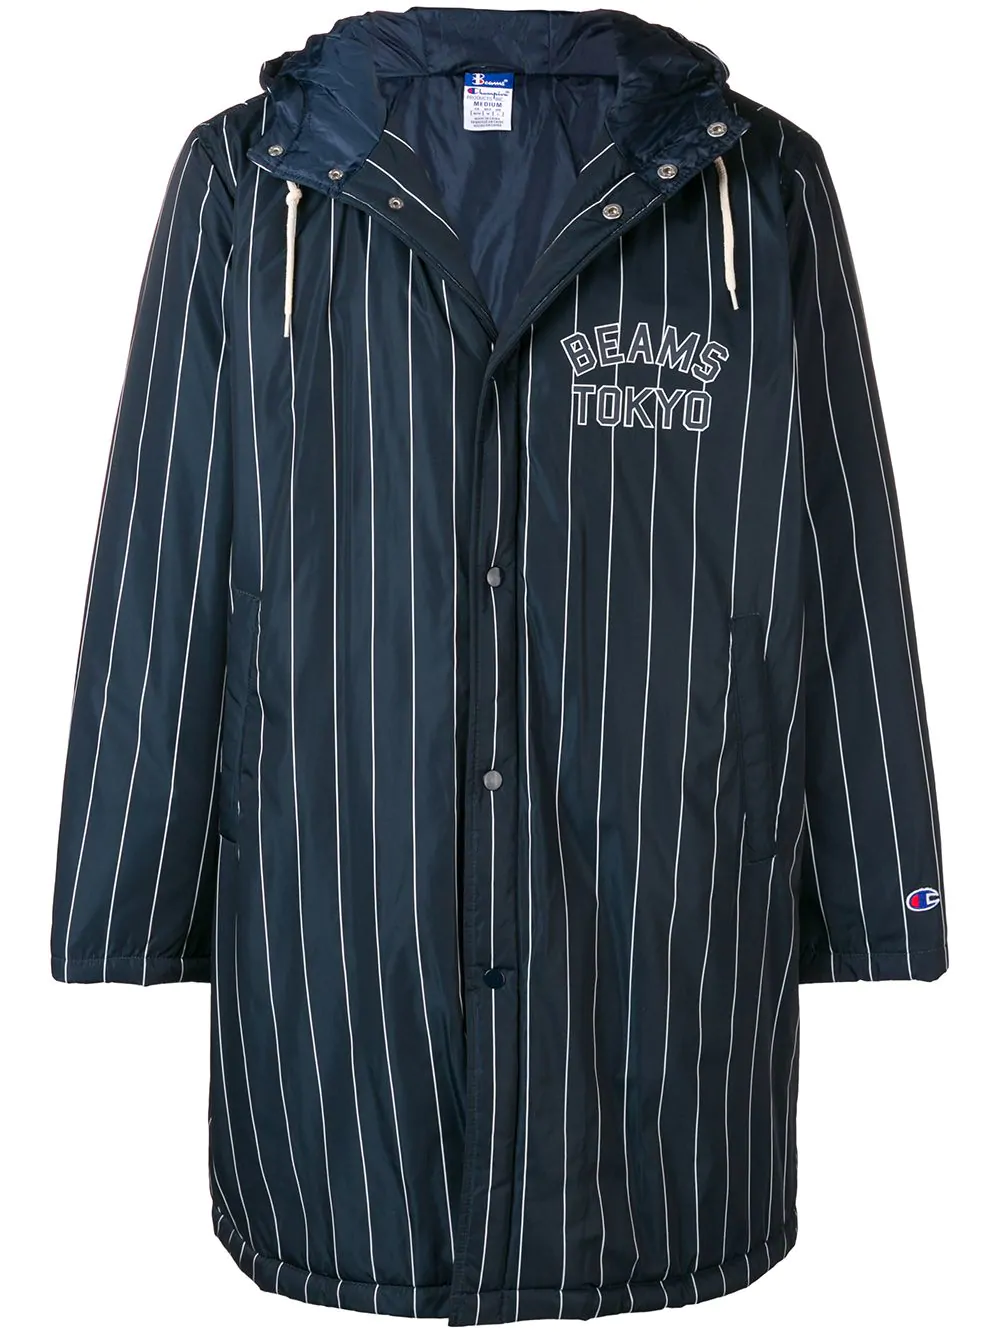 b4093851f Champion X Beams Tokyo Coat In Blue | ModeSens